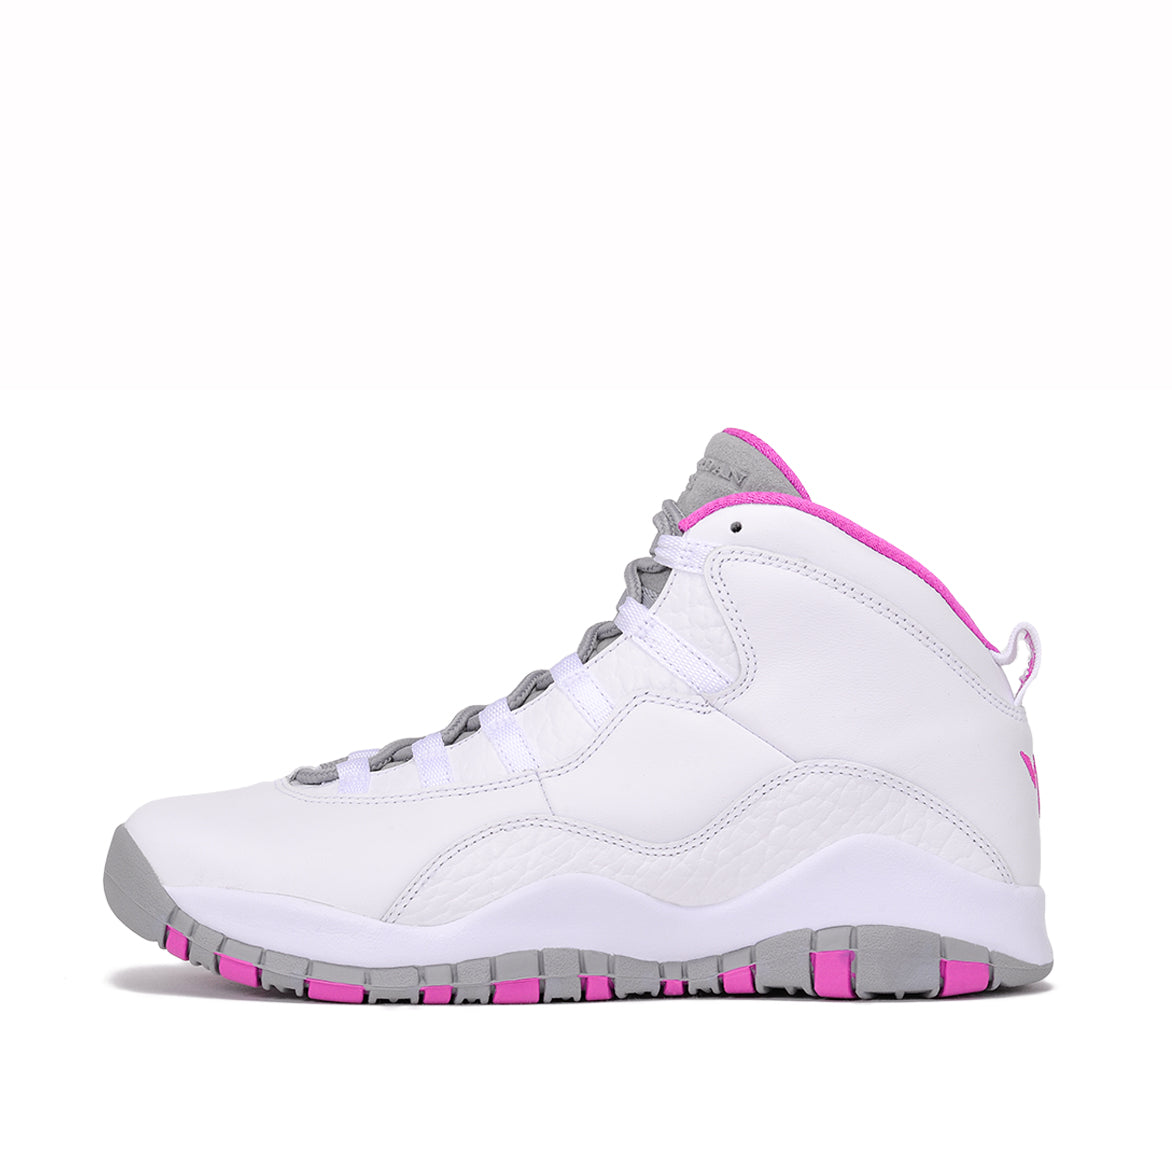 7c1ba8f6b20 AIR JORDAN 10 RETRO (GG)